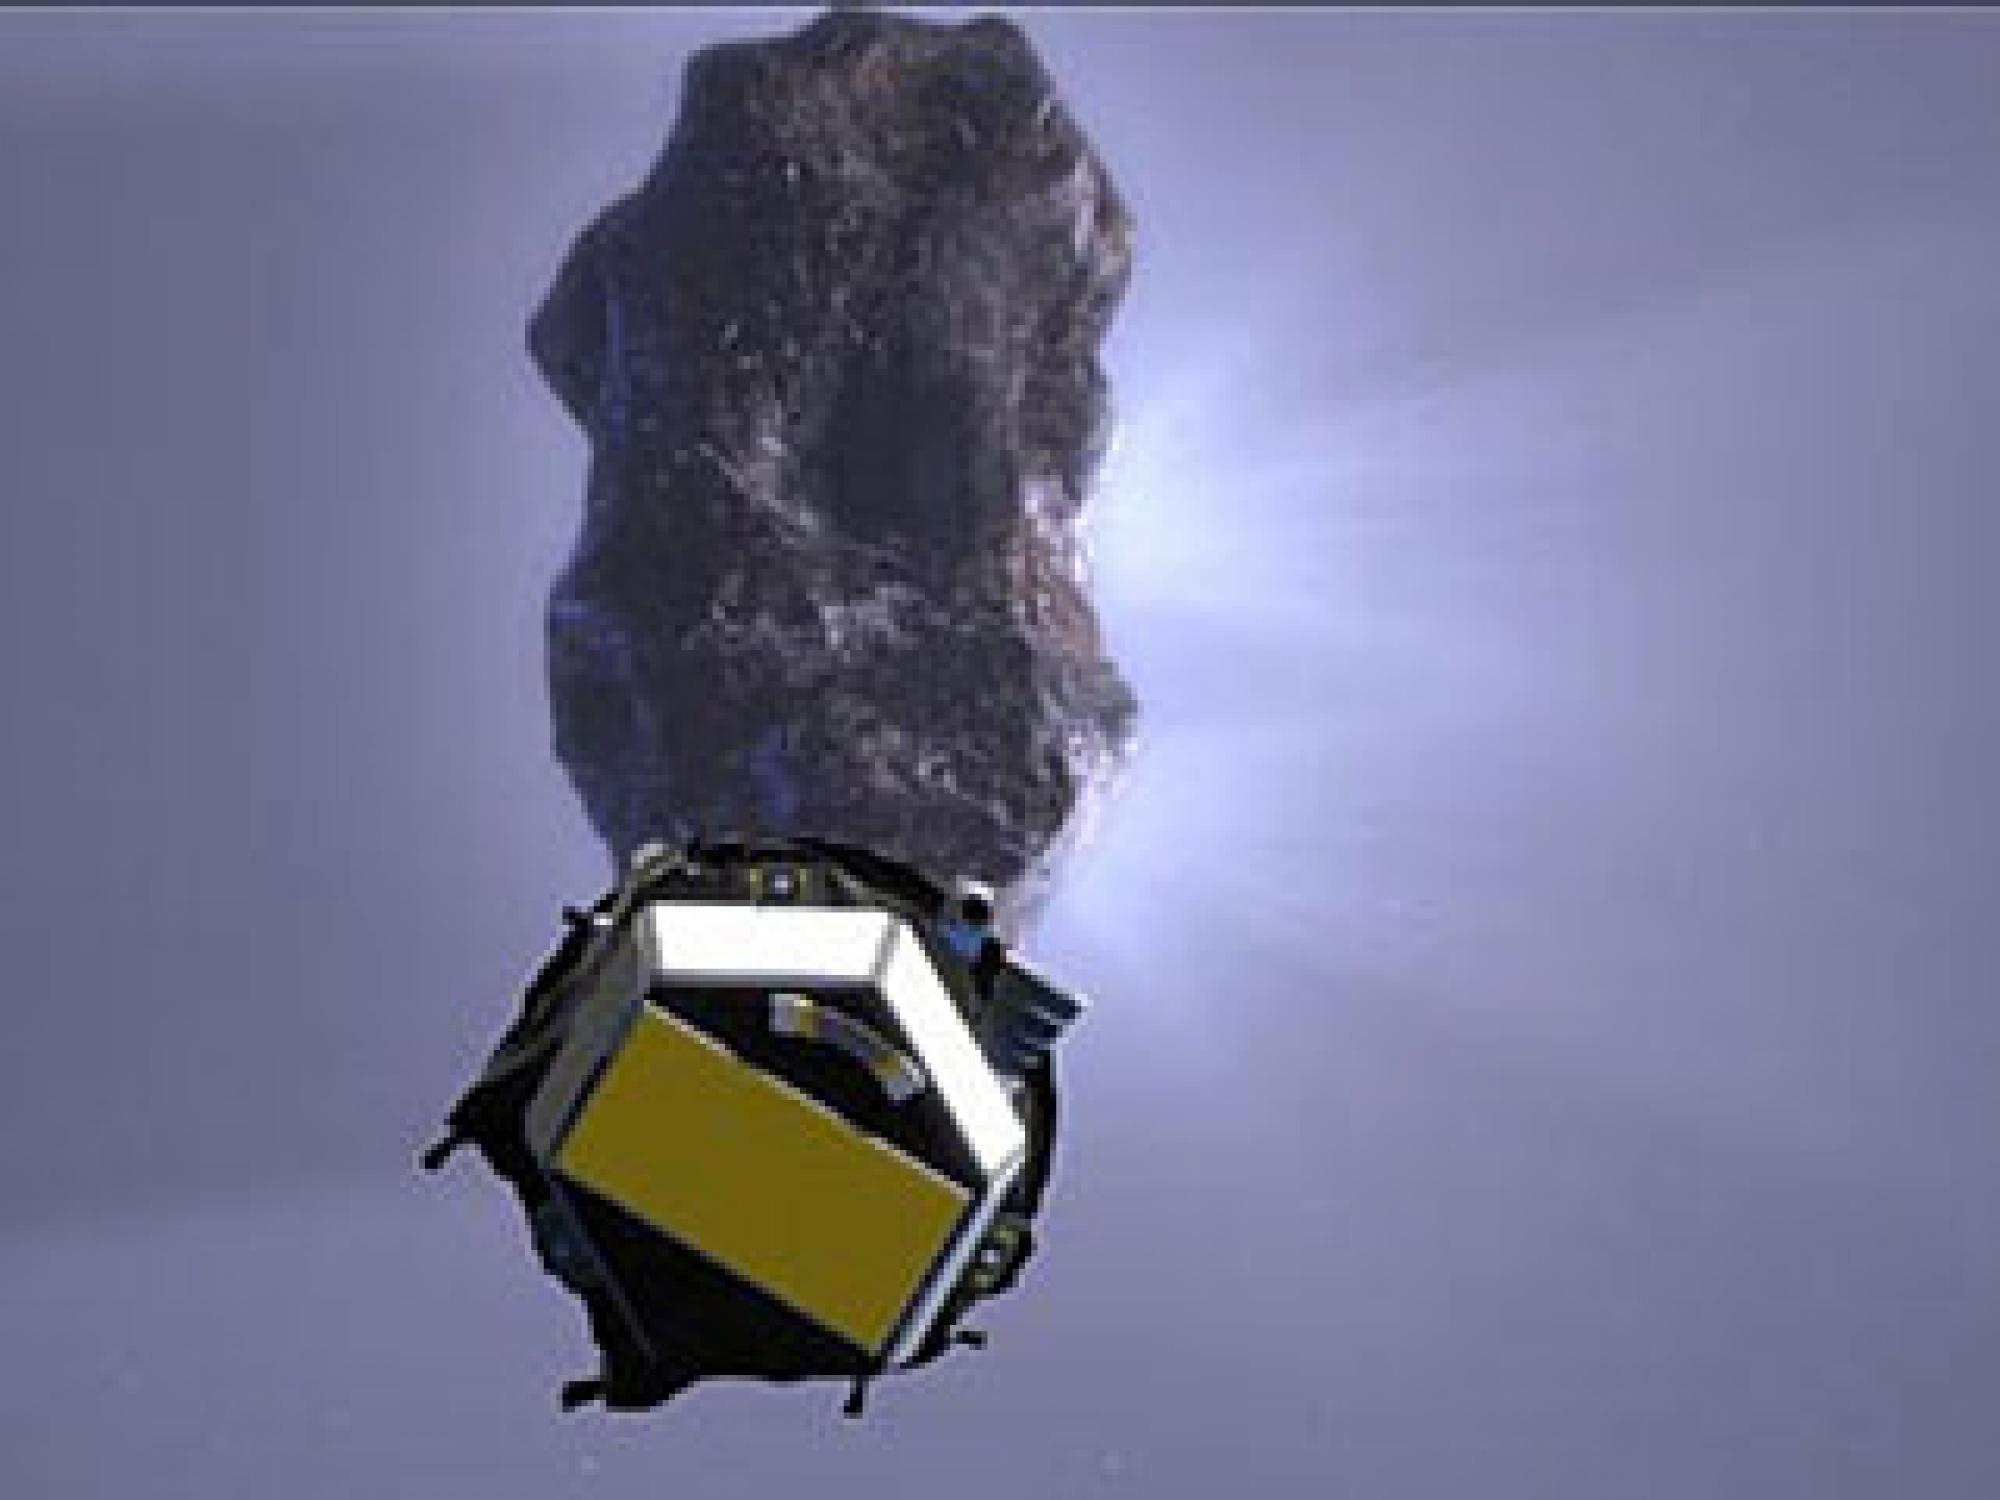 Deep Impact Encounter - Artist's concept showing impactor spacecraft approaching comet Tempel 1.